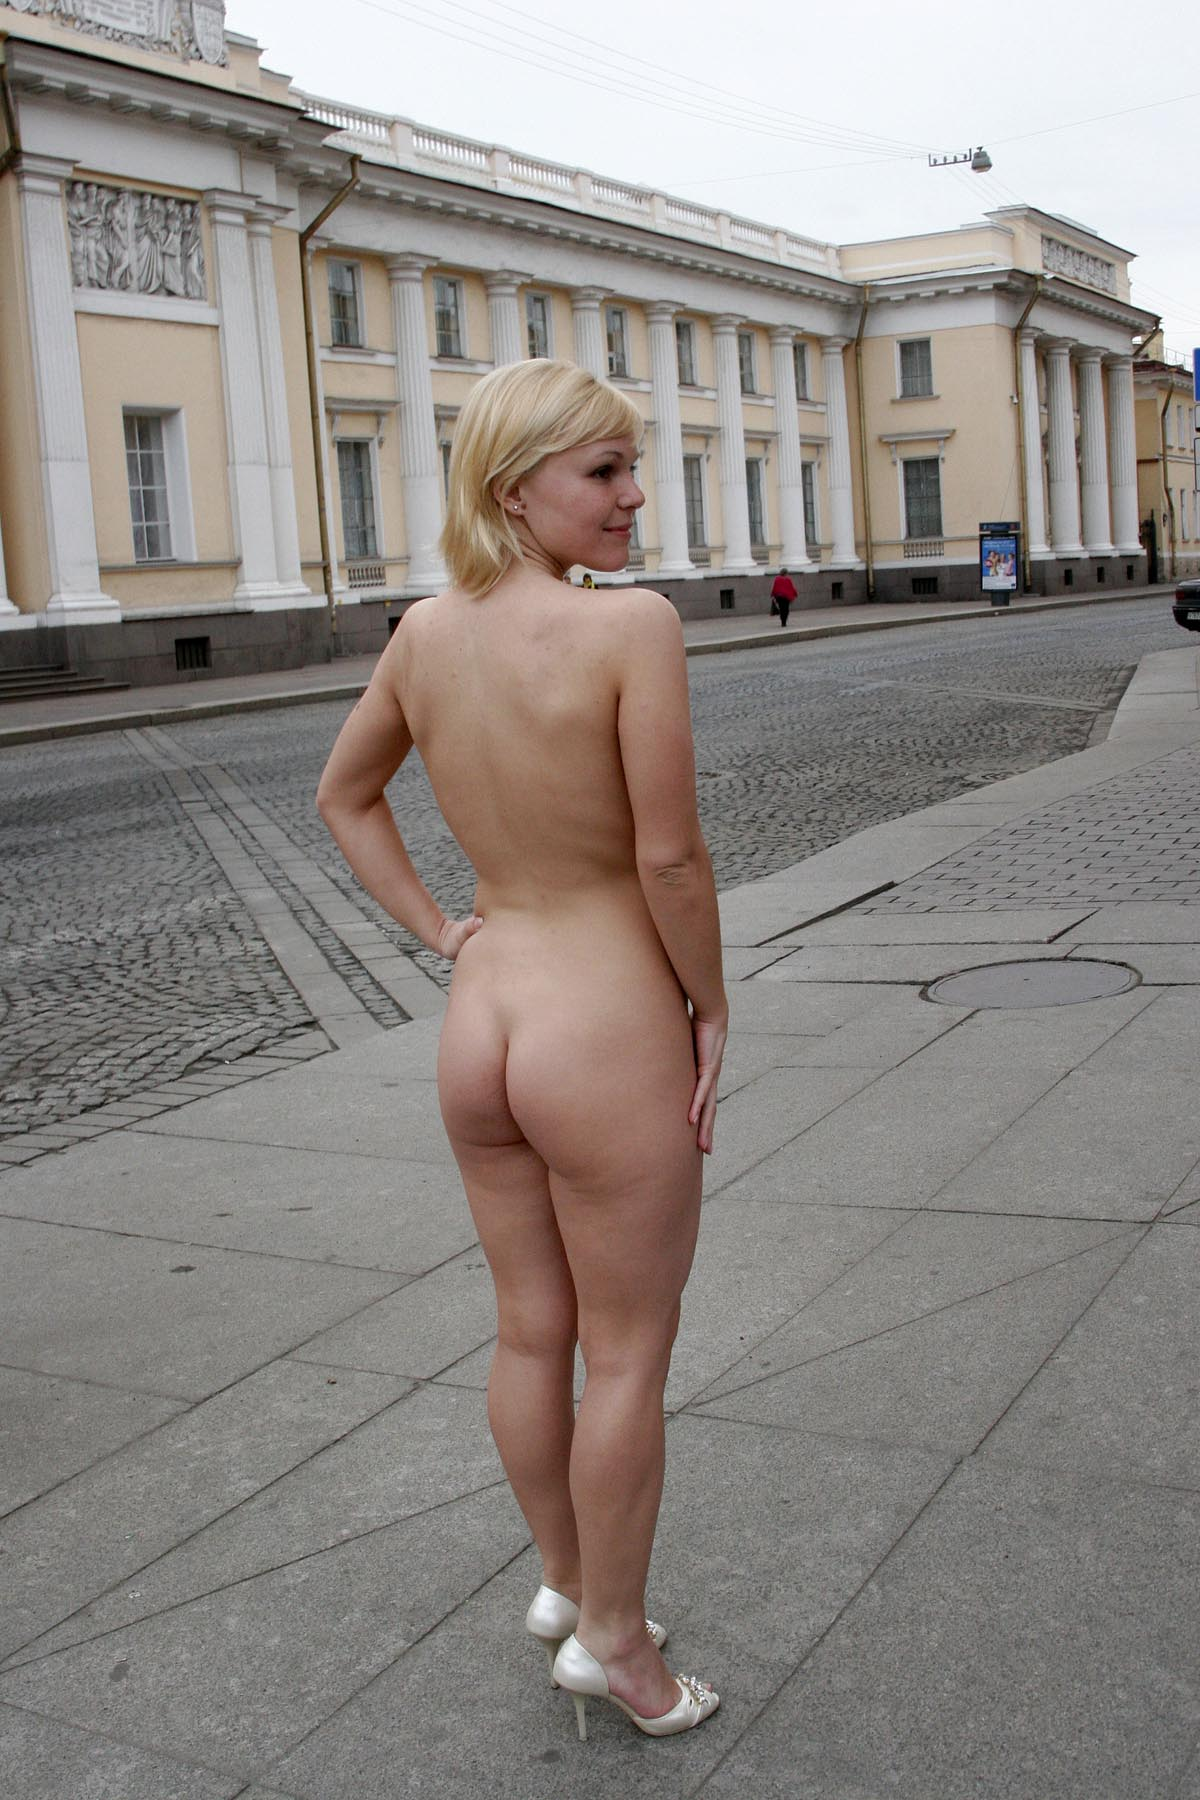 short haired blonde posing naked at city center russian